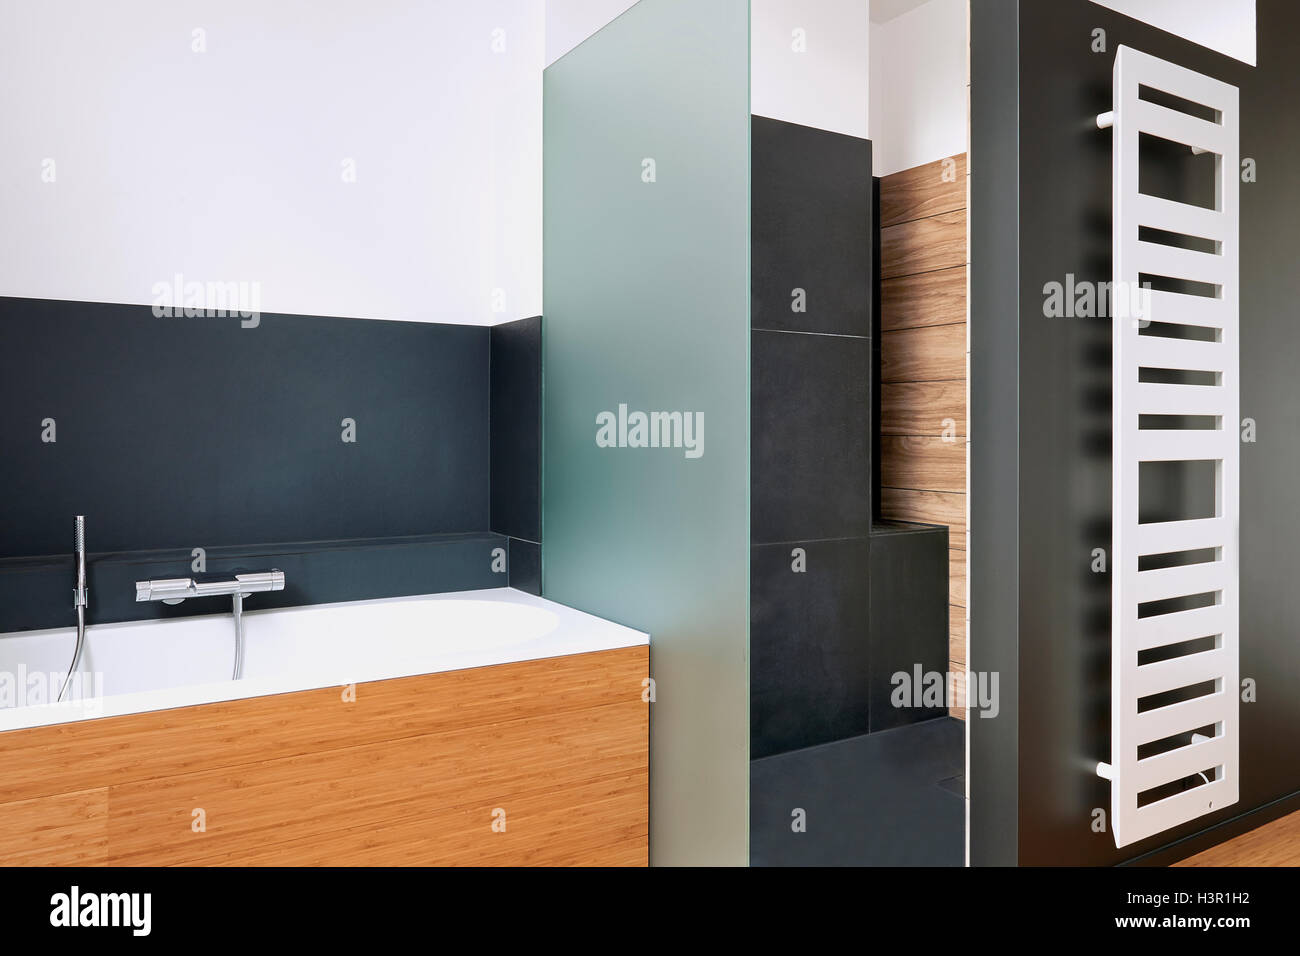 Custom Bathroom Stock Photos & Custom Bathroom Stock Images - Alamy